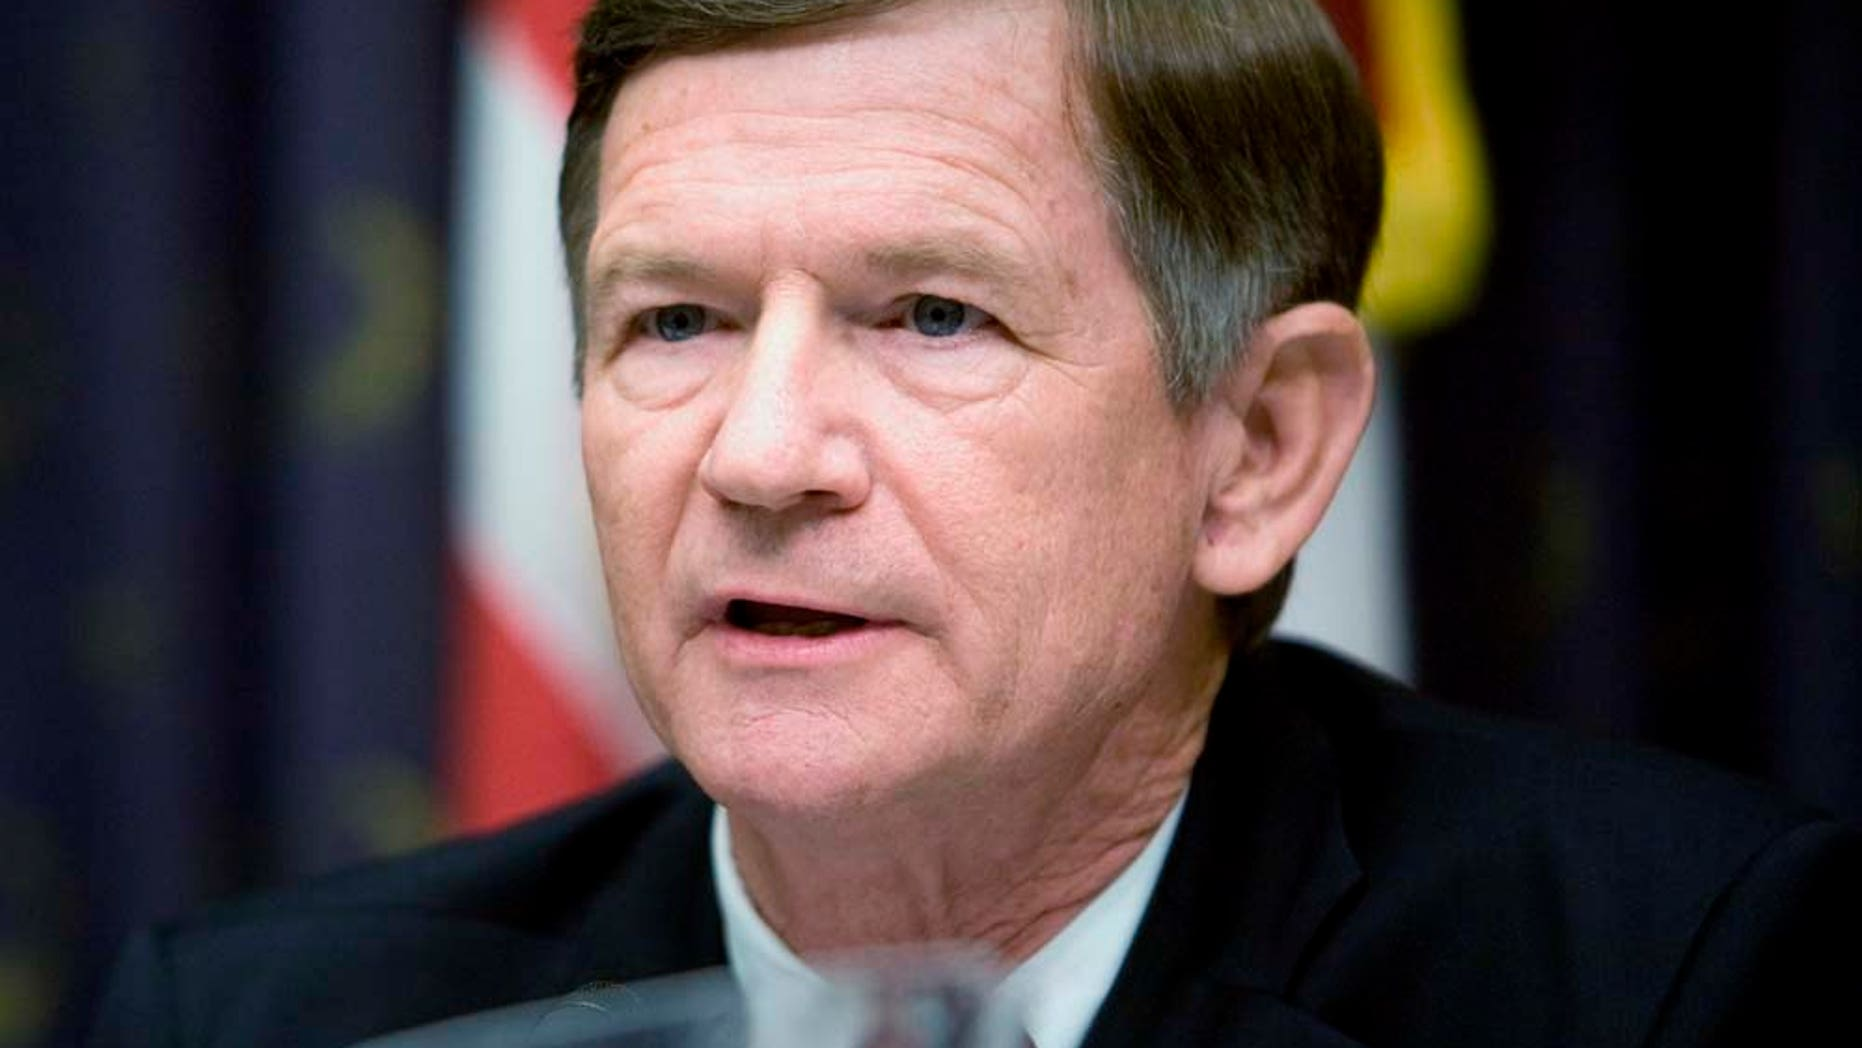 JUNE 20: Representative Lamar Smith (R-TX), here in 2008, introduced a bill that would require U.S. businesses to verify new workers through a government database. (Photo by Brendan Smialowski/Getty Images)